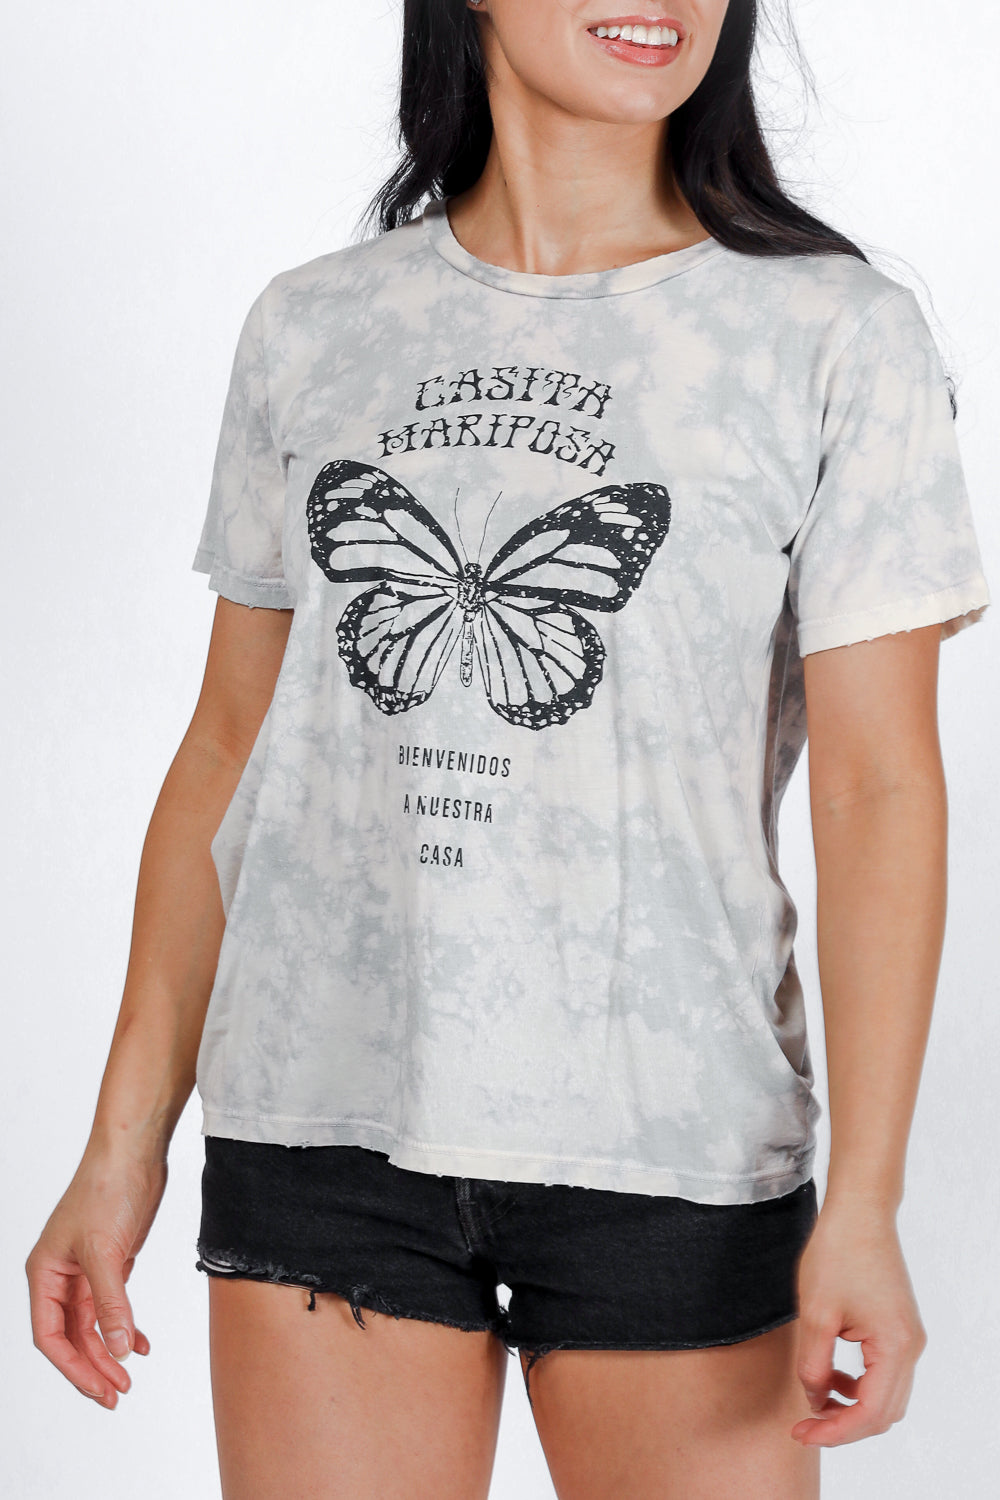 Casita Mariposa Distressed Tee PREORDER